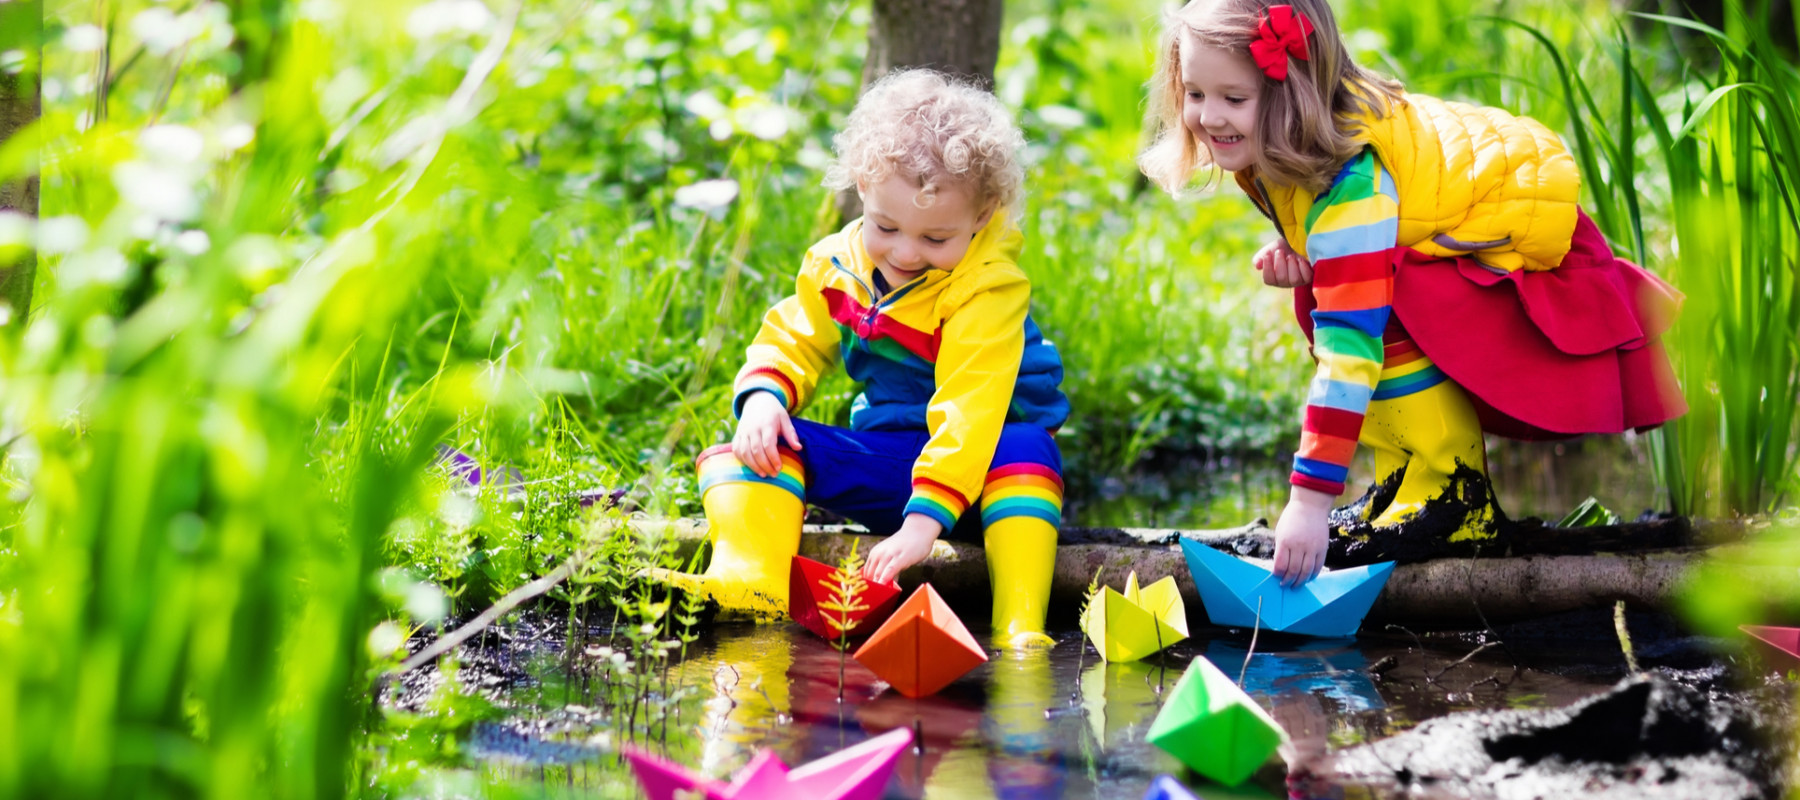 Children play with colorful paper boats in a small river on a sunny spring day.